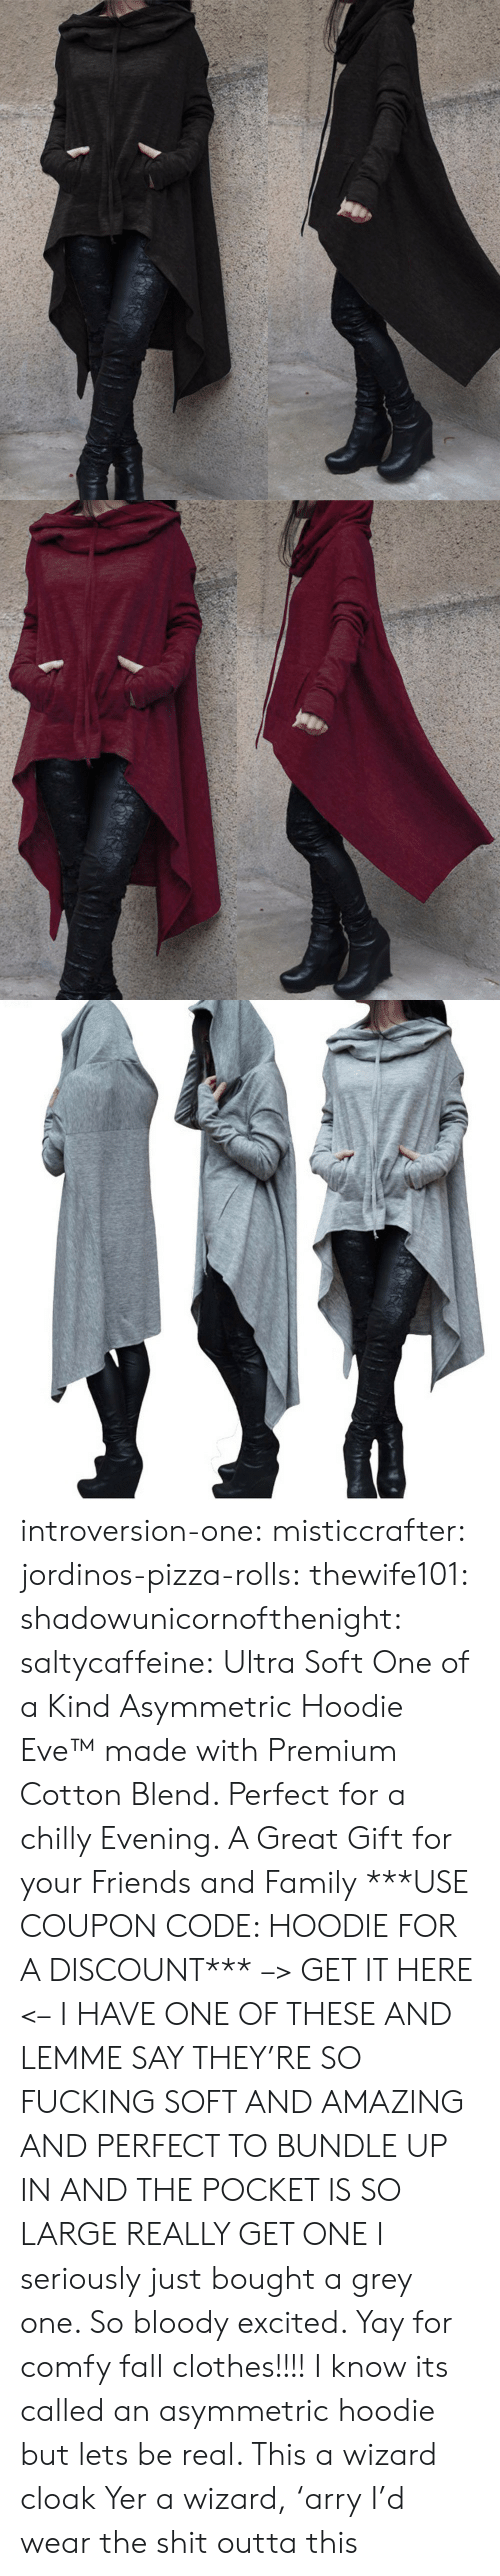 yer: introversion-one:  misticcrafter:  jordinos-pizza-rolls:  thewife101:  shadowunicornofthenight:  saltycaffeine:  Ultra Soft One of a Kind Asymmetric Hoodie Eve™made with Premium Cotton Blend. Perfect for a chilly Evening. A Great Gift for your Friends and Family ***USE COUPON CODE: HOODIE FOR A DISCOUNT*** –> GET IT HERE <–   I HAVE ONE OF THESE AND LEMME SAY THEY'RE SO FUCKING SOFT AND AMAZING AND PERFECT TO BUNDLE UP IN AND THE POCKET IS SO LARGE REALLY GET ONE   I seriously just bought a grey one. So bloody excited. Yay for comfy fall clothes!!!!    I know its called an asymmetric hoodie but lets be real. This a wizard cloak  Yer a wizard,'arry   I'd wear the shit outta this